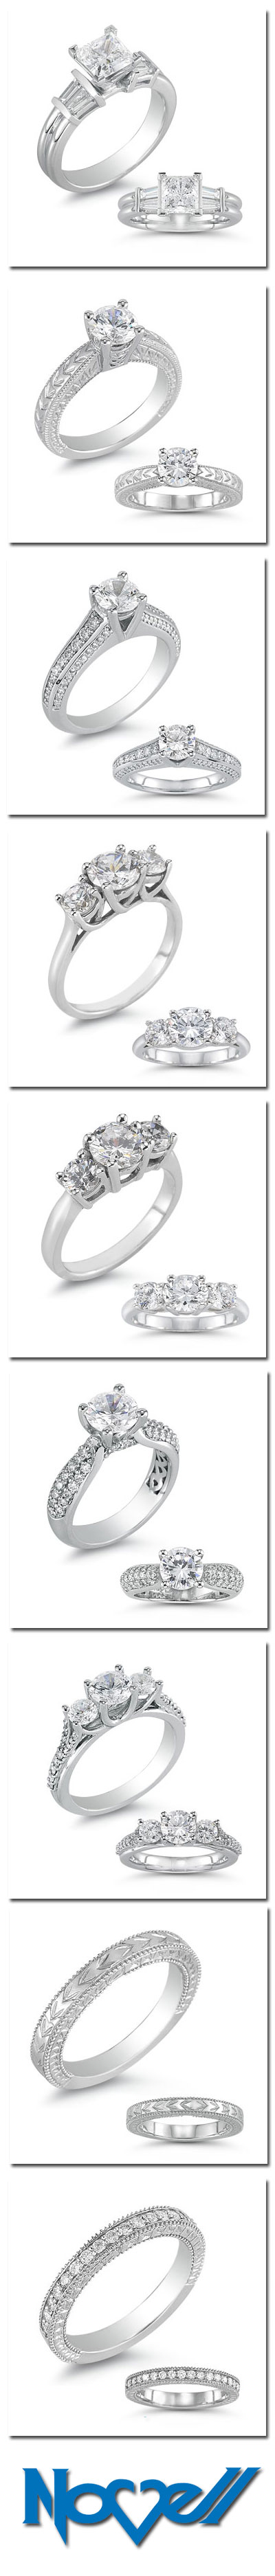 Coming soon from Novell - new engagement rings and ladies' wedding bands.